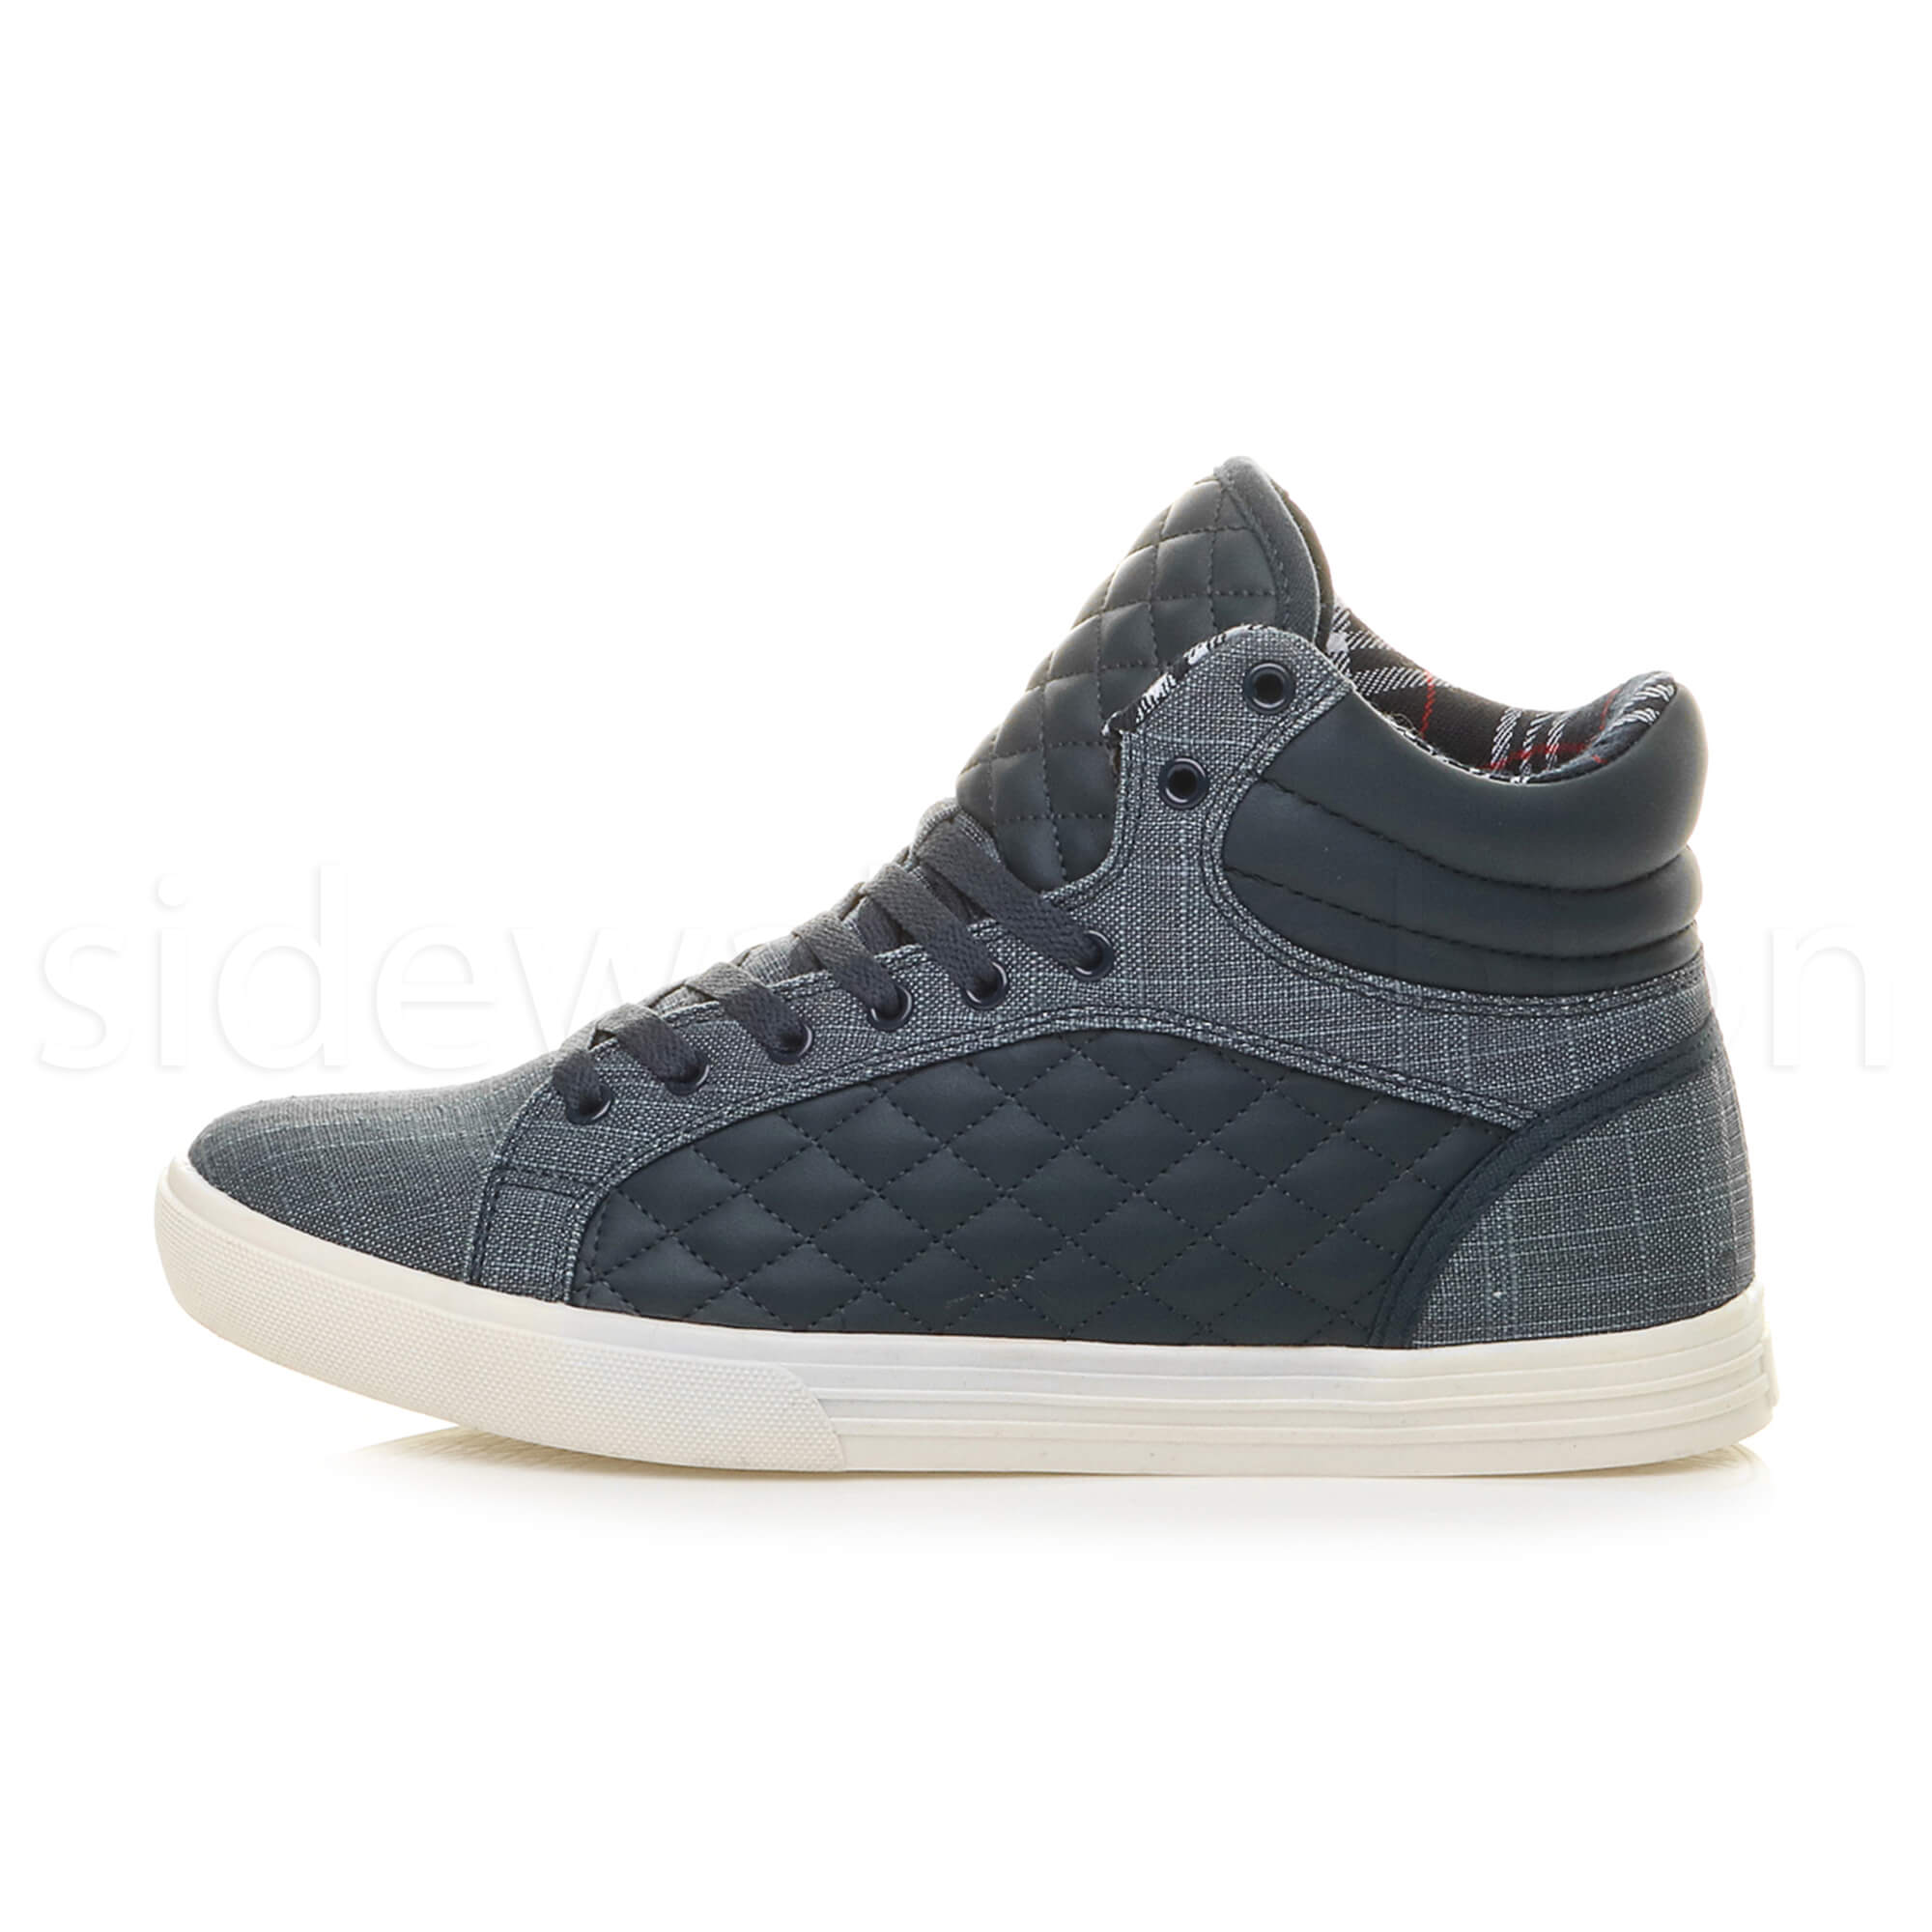 Mens-flat-lace-up-quilted-casual-hi-high-top-ankle-boots-trainers-sneakers-size thumbnail 24